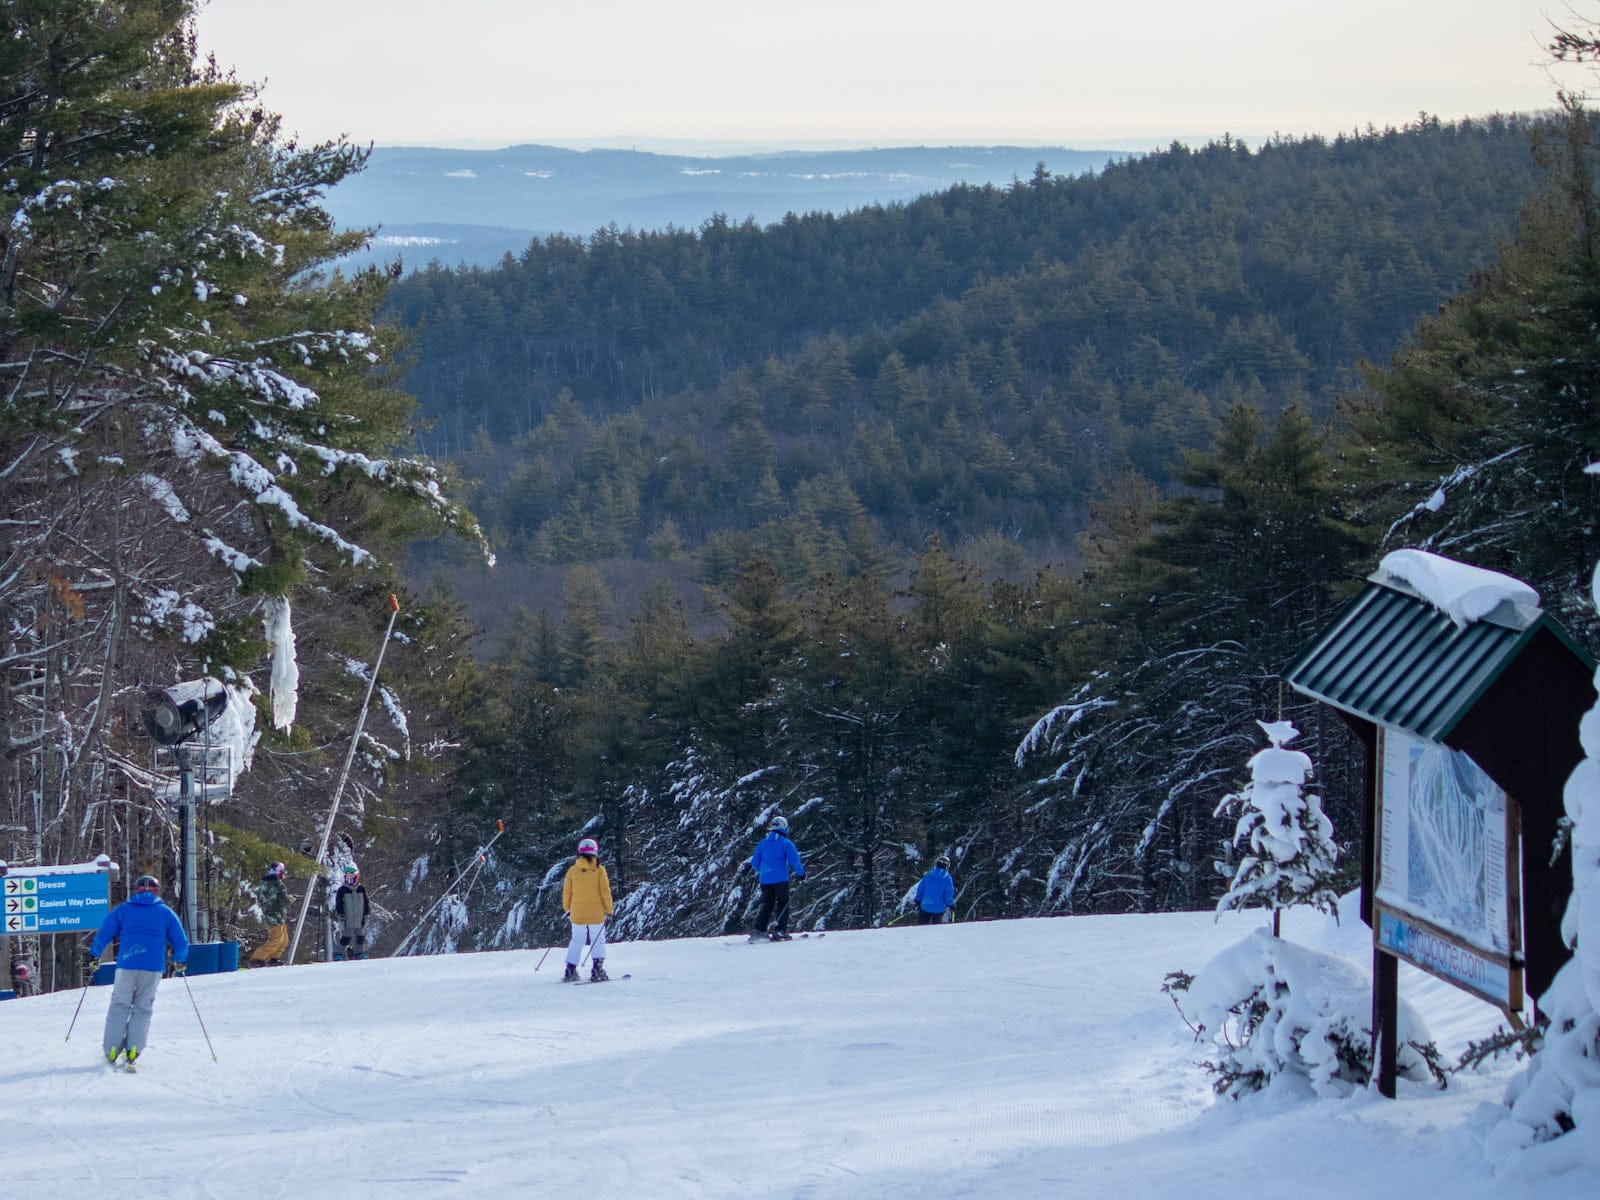 Image of skiers at Pat's Peak Ski Area in New Hampshire